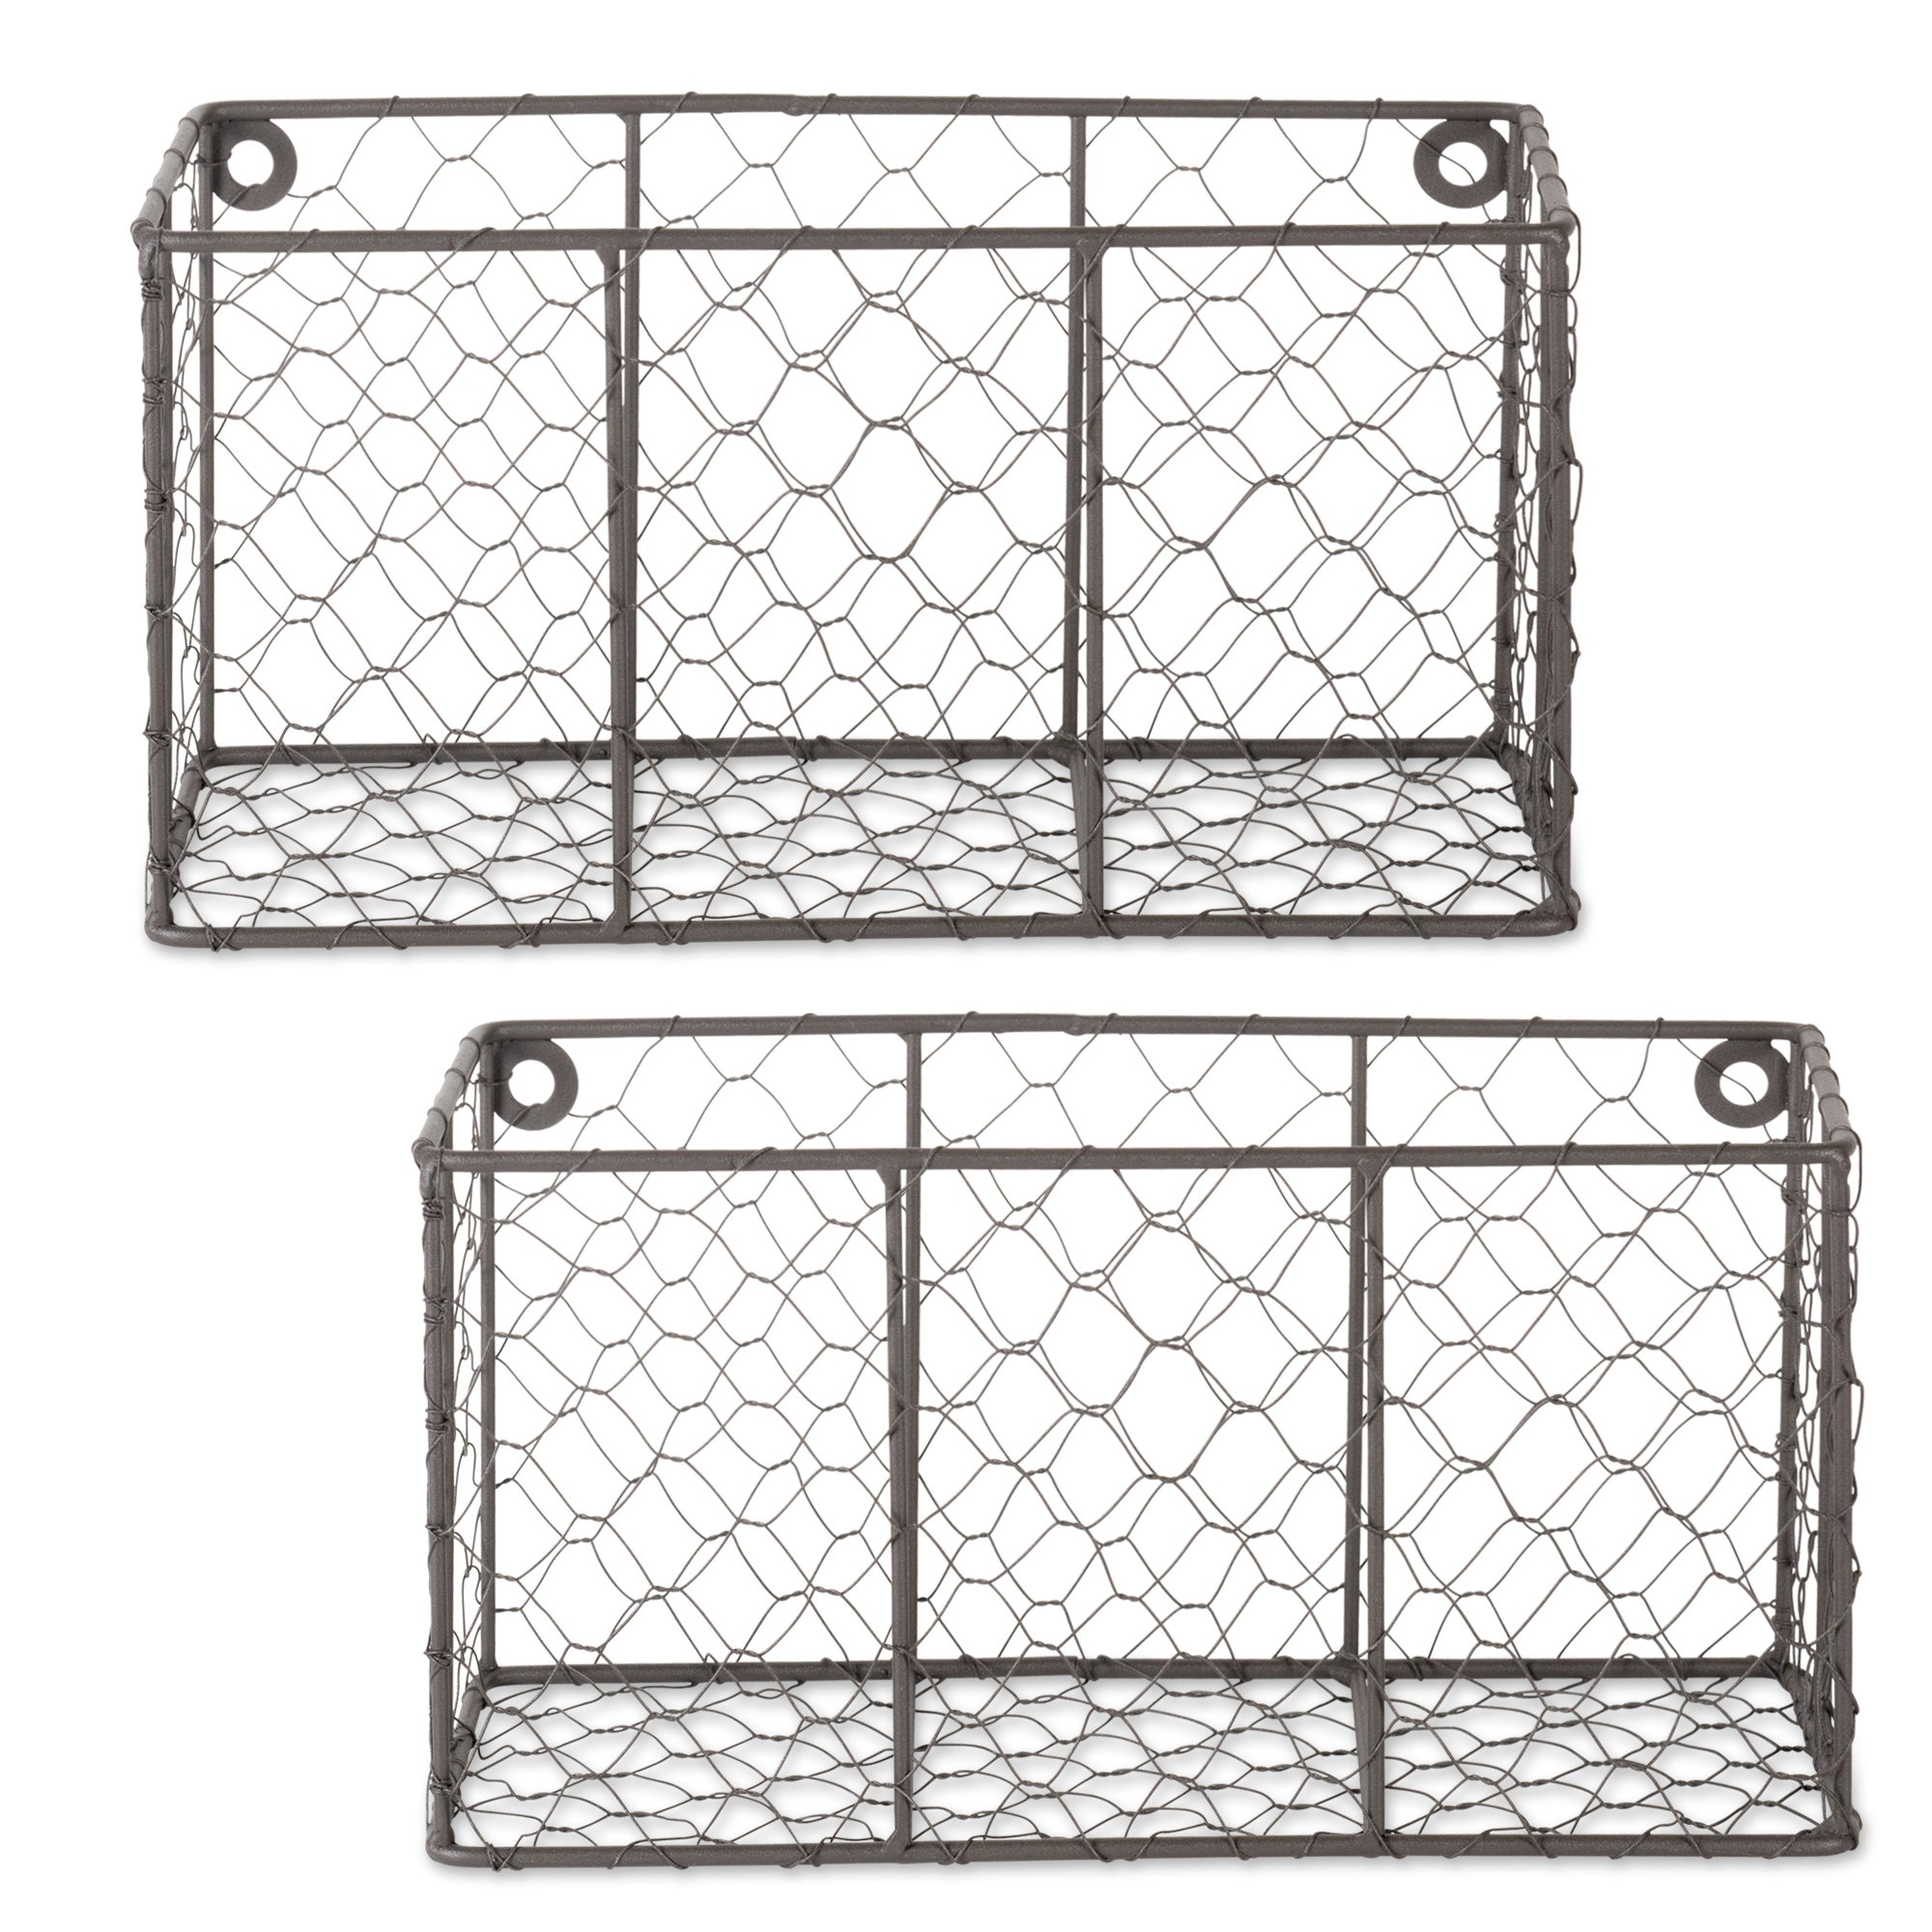 DII Z01929 Rustic Farmhouse Vintage Chicken Wire Wall Basket, Small (Set of 2), Bronze by DII (Image #1)